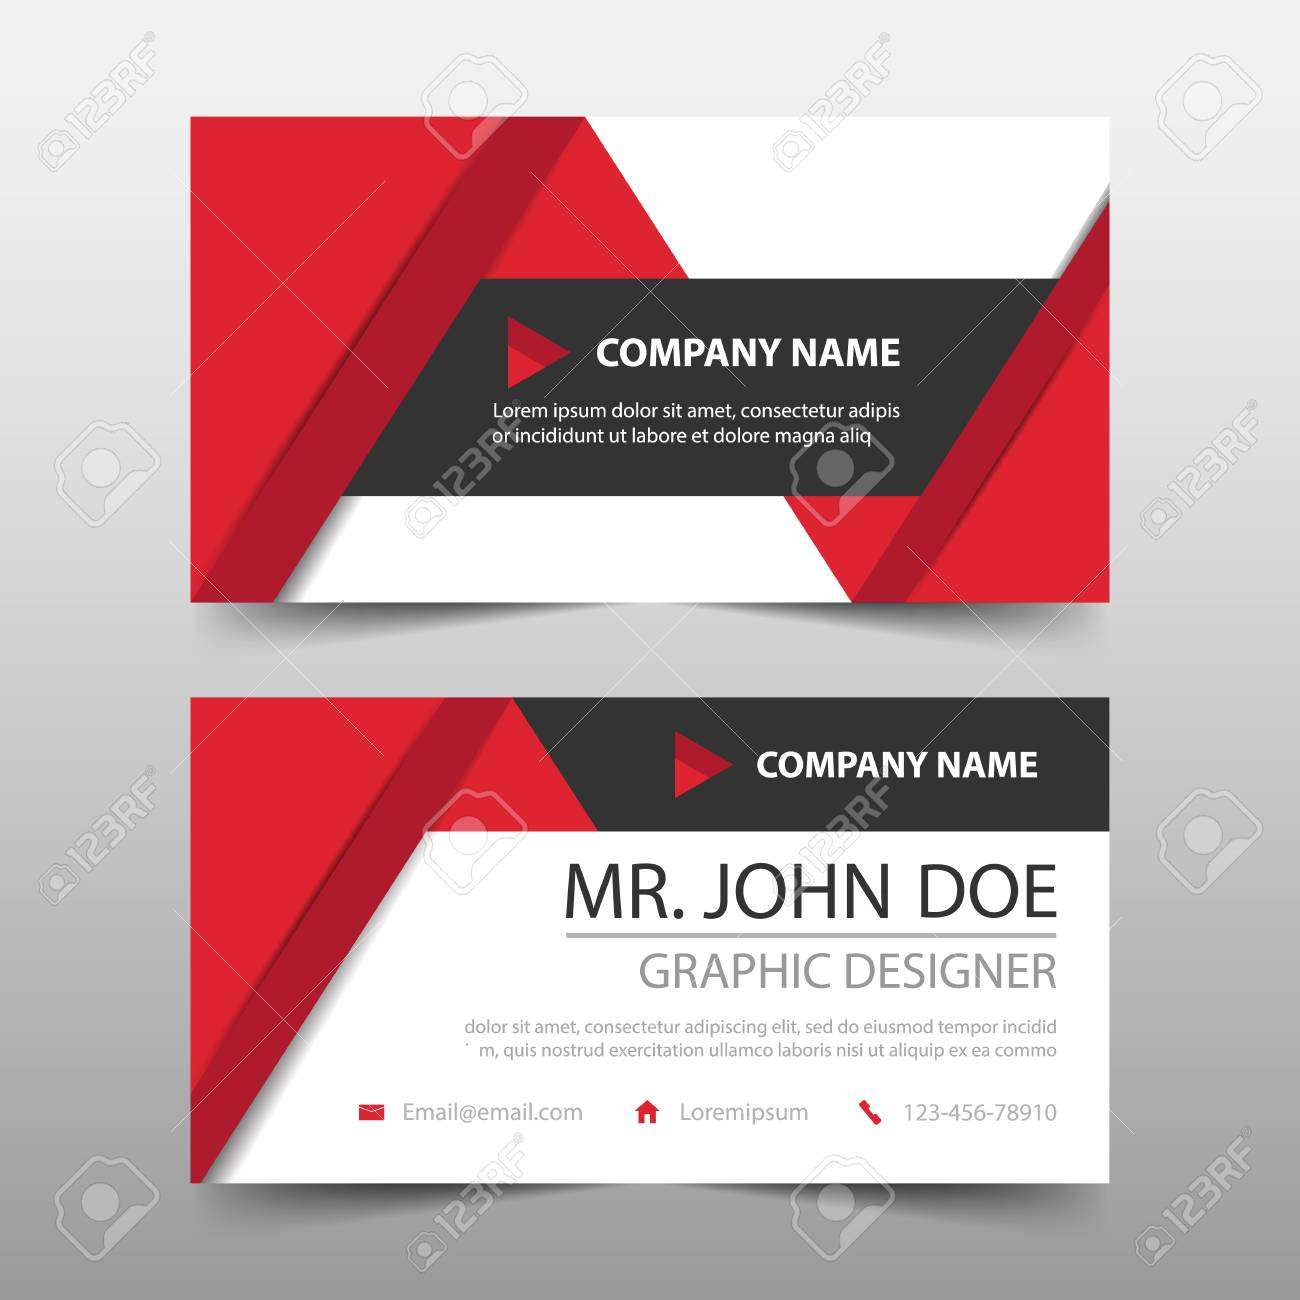 Red triangle corporate business card name card template horizontal red triangle corporate business card name card template horizontal simple clean layout design template wajeb Choice Image